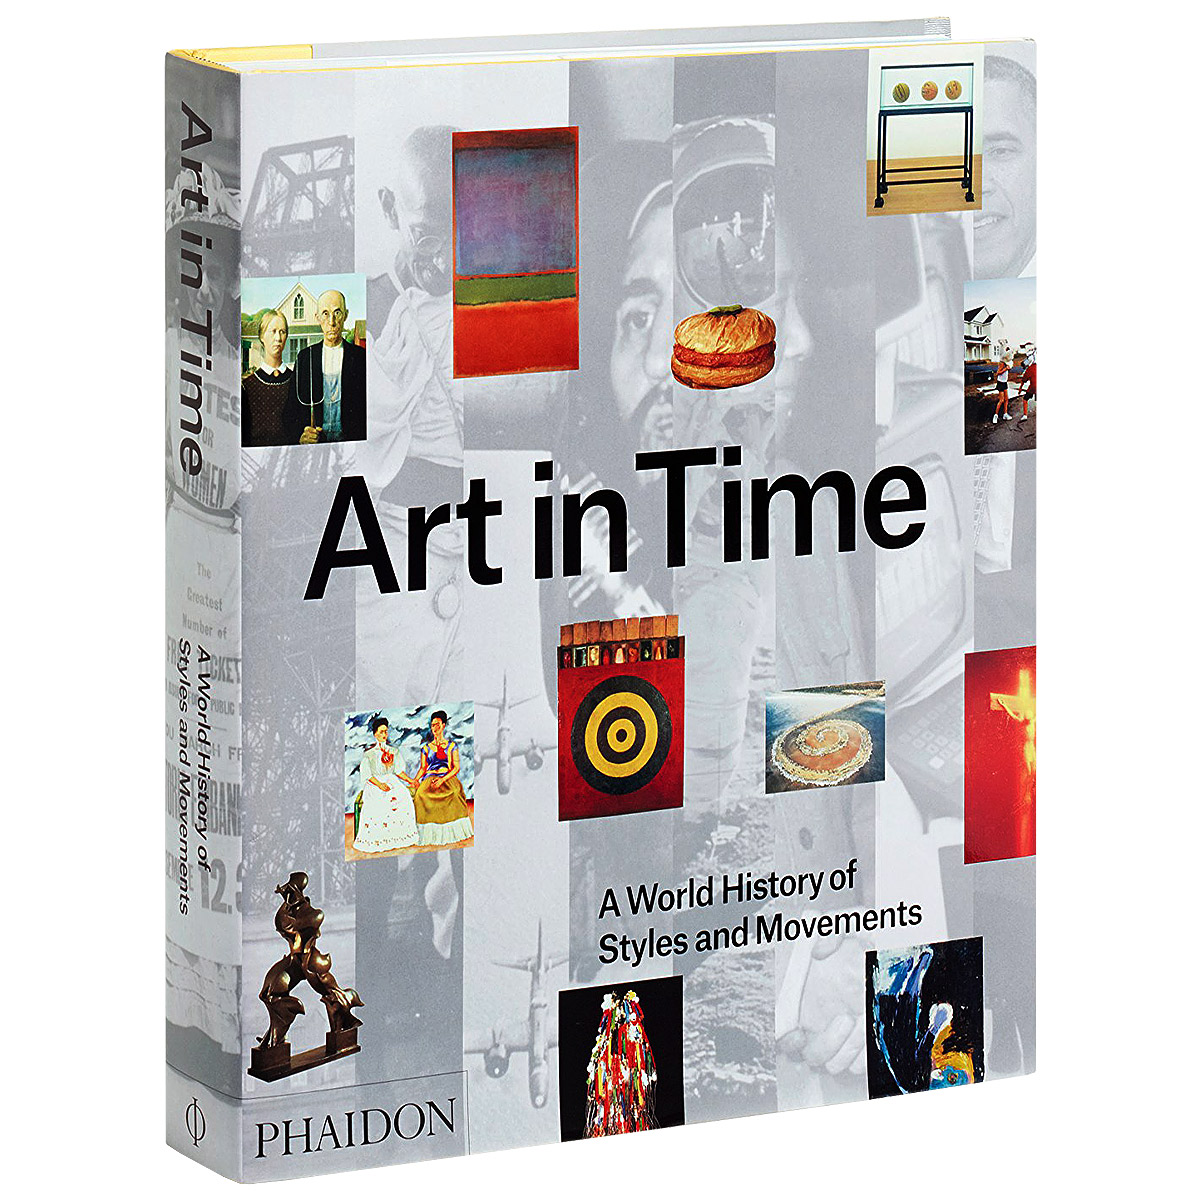 Art in Time: A World History of Styles and Movements duncan bruce the dream cafe lessons in the art of radical innovation